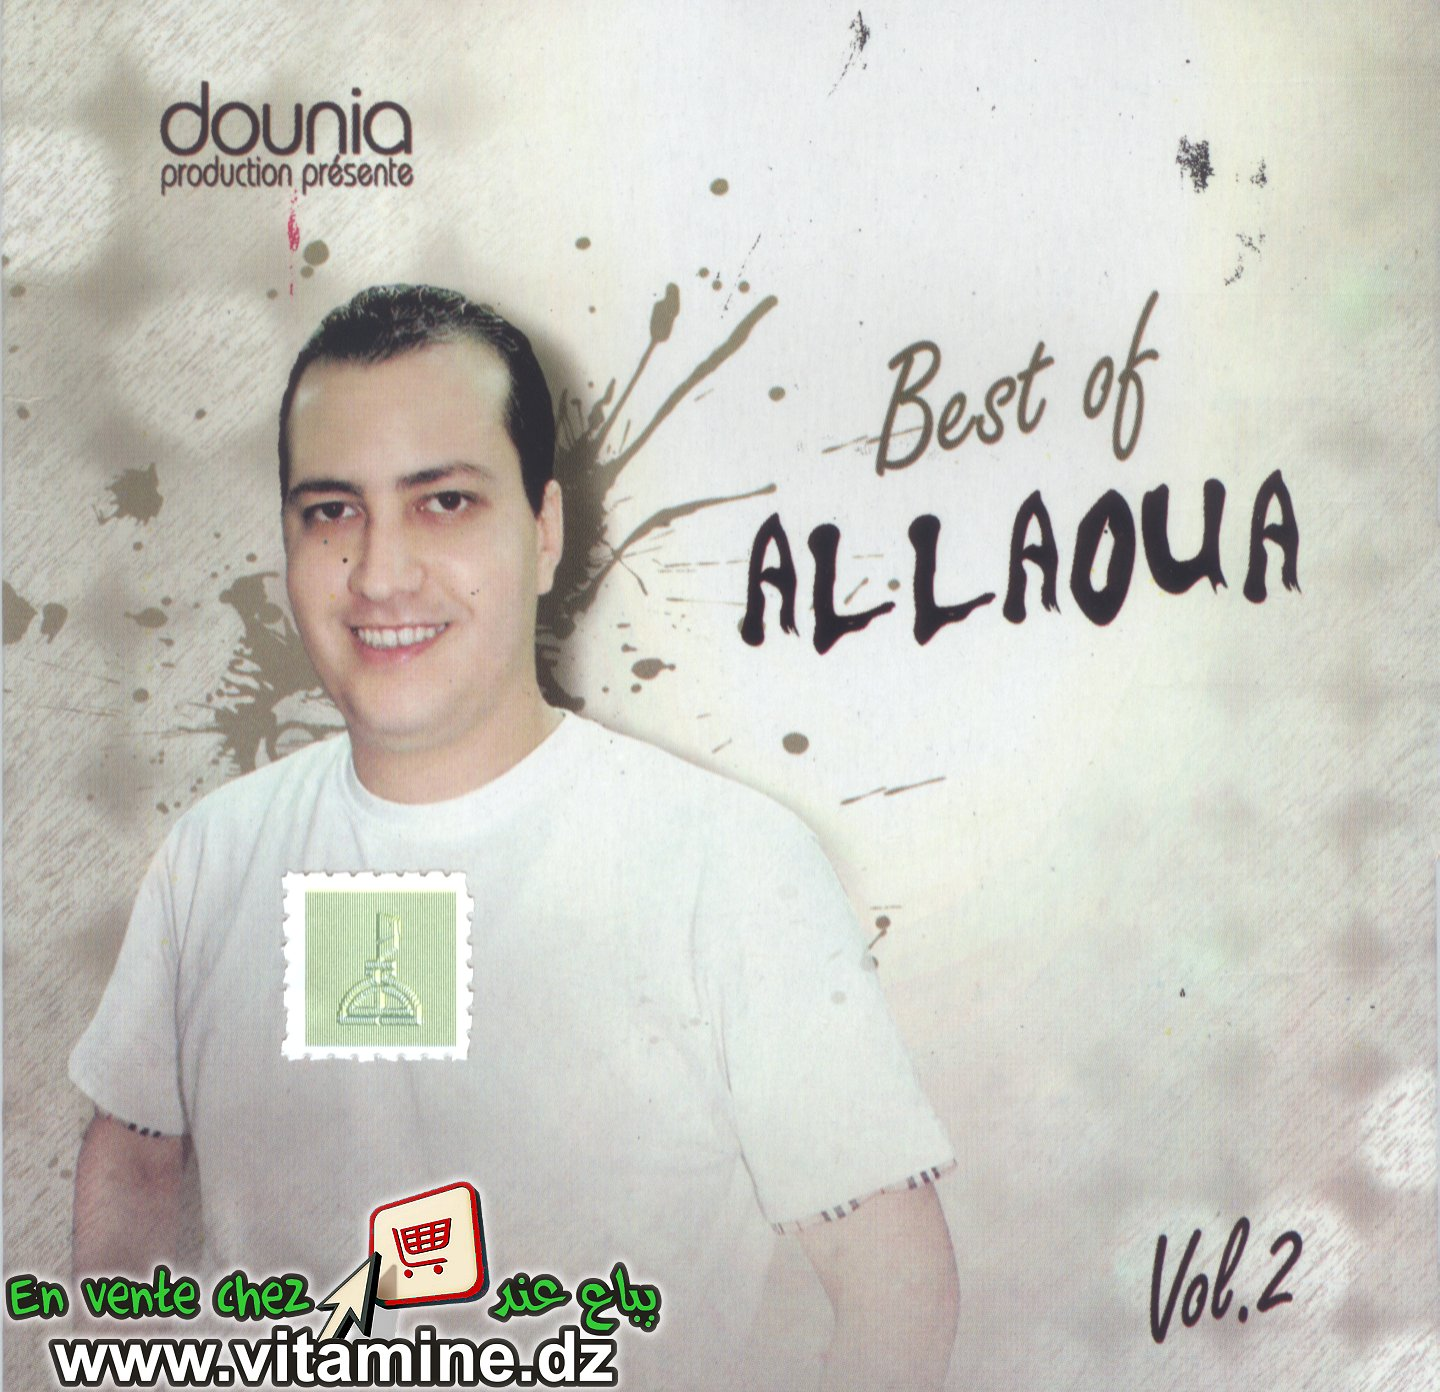 Allaoua - best of vol 2